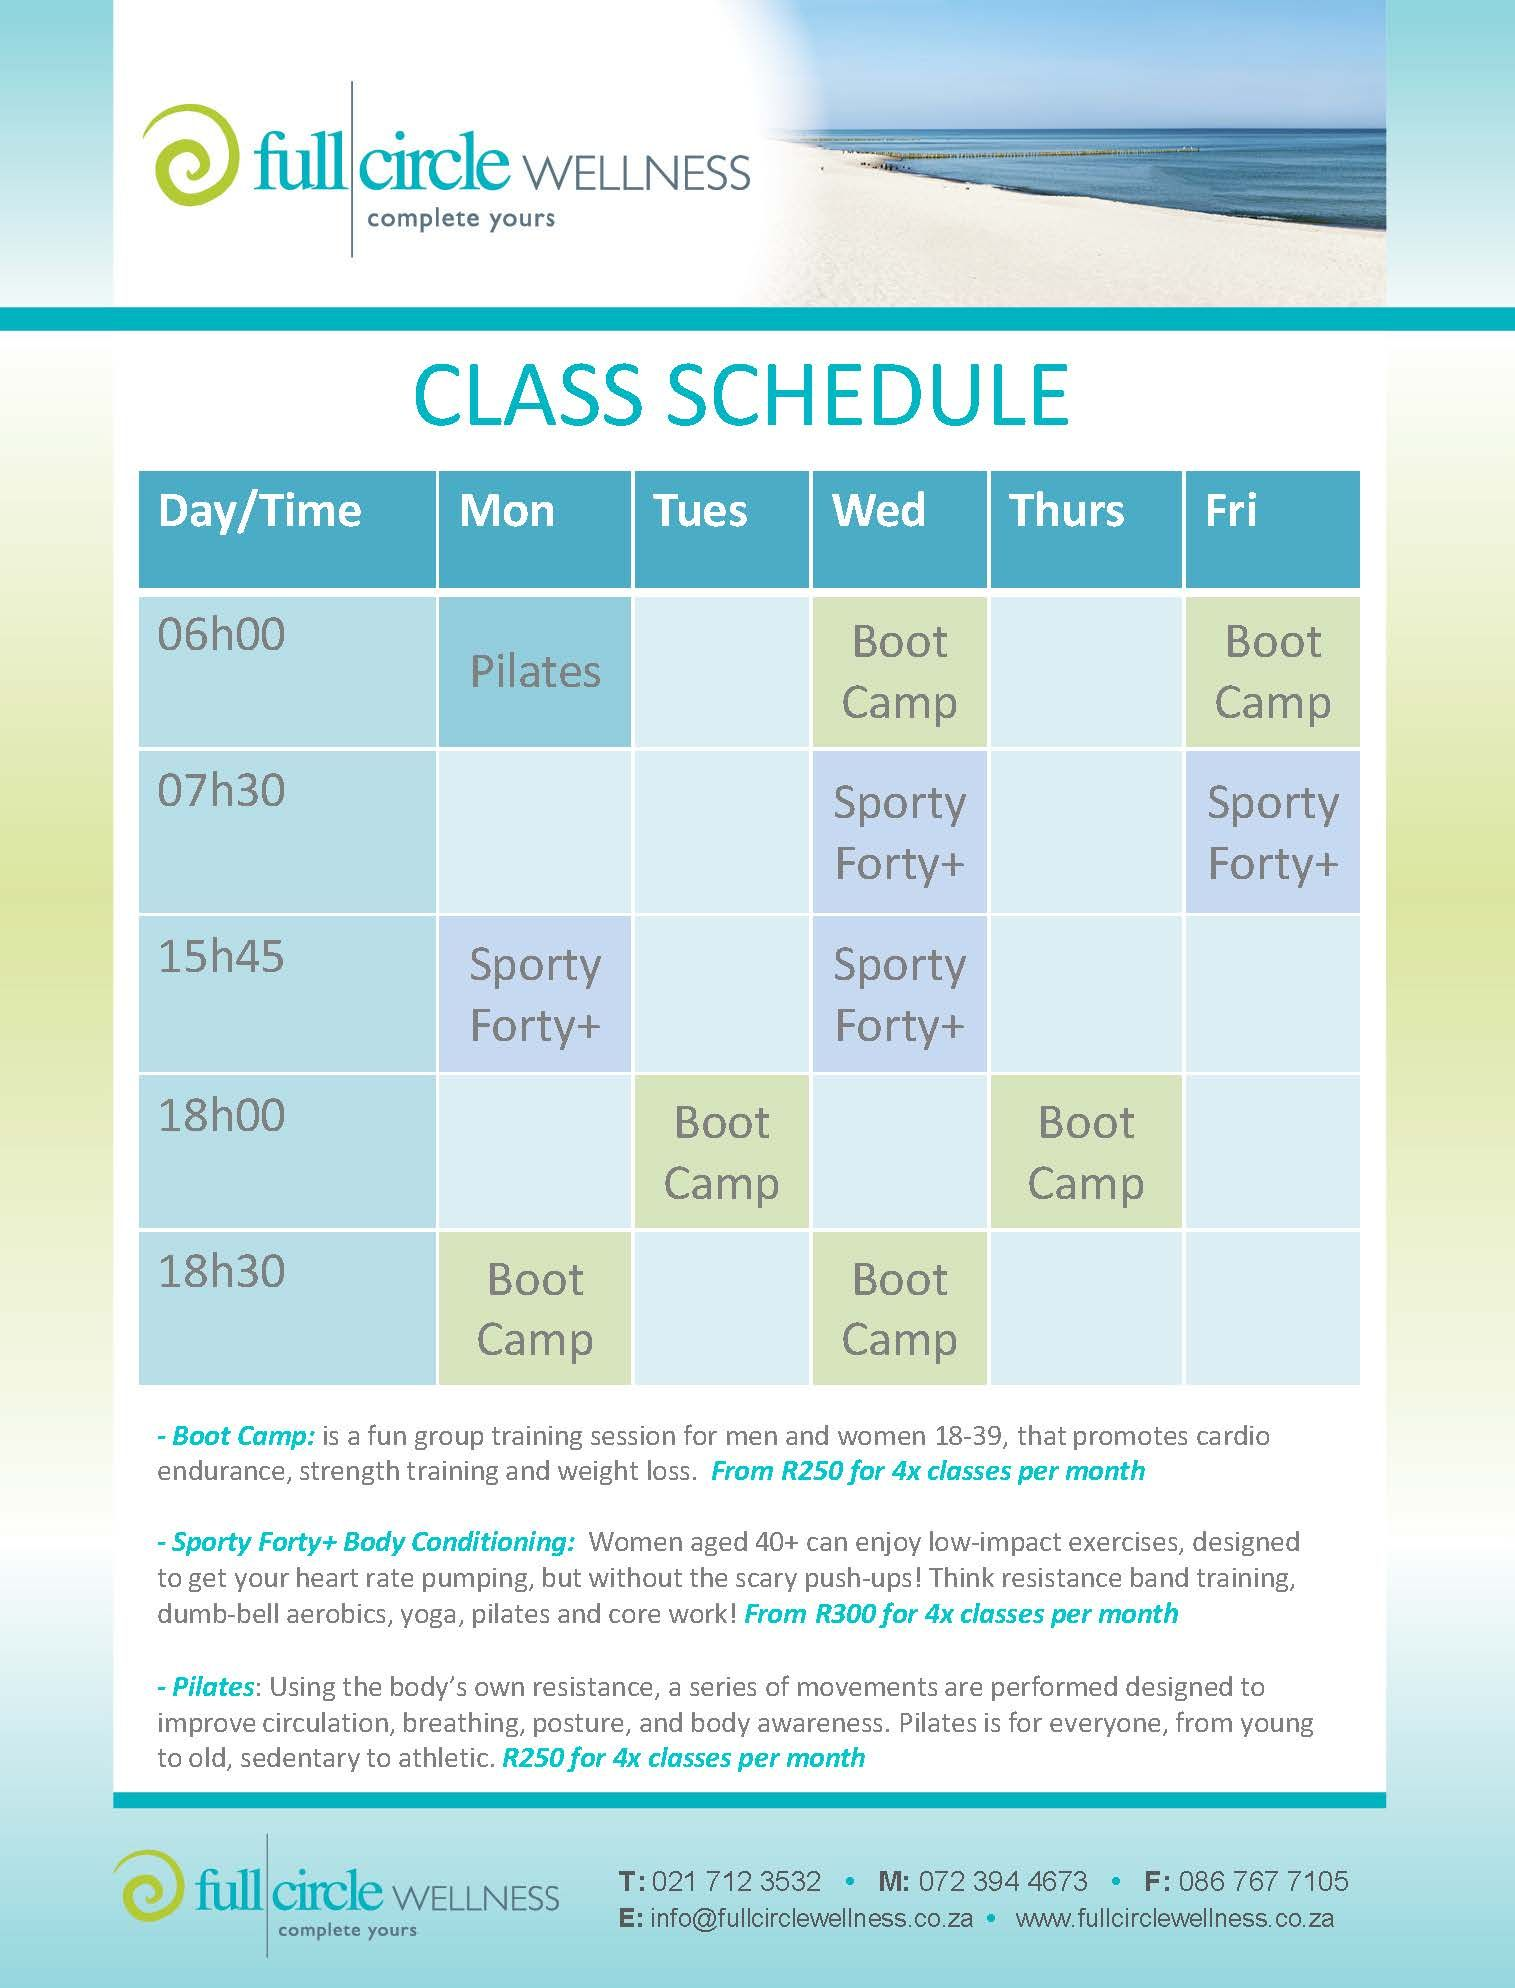 Your first group fitness class is FREE! Come join us!